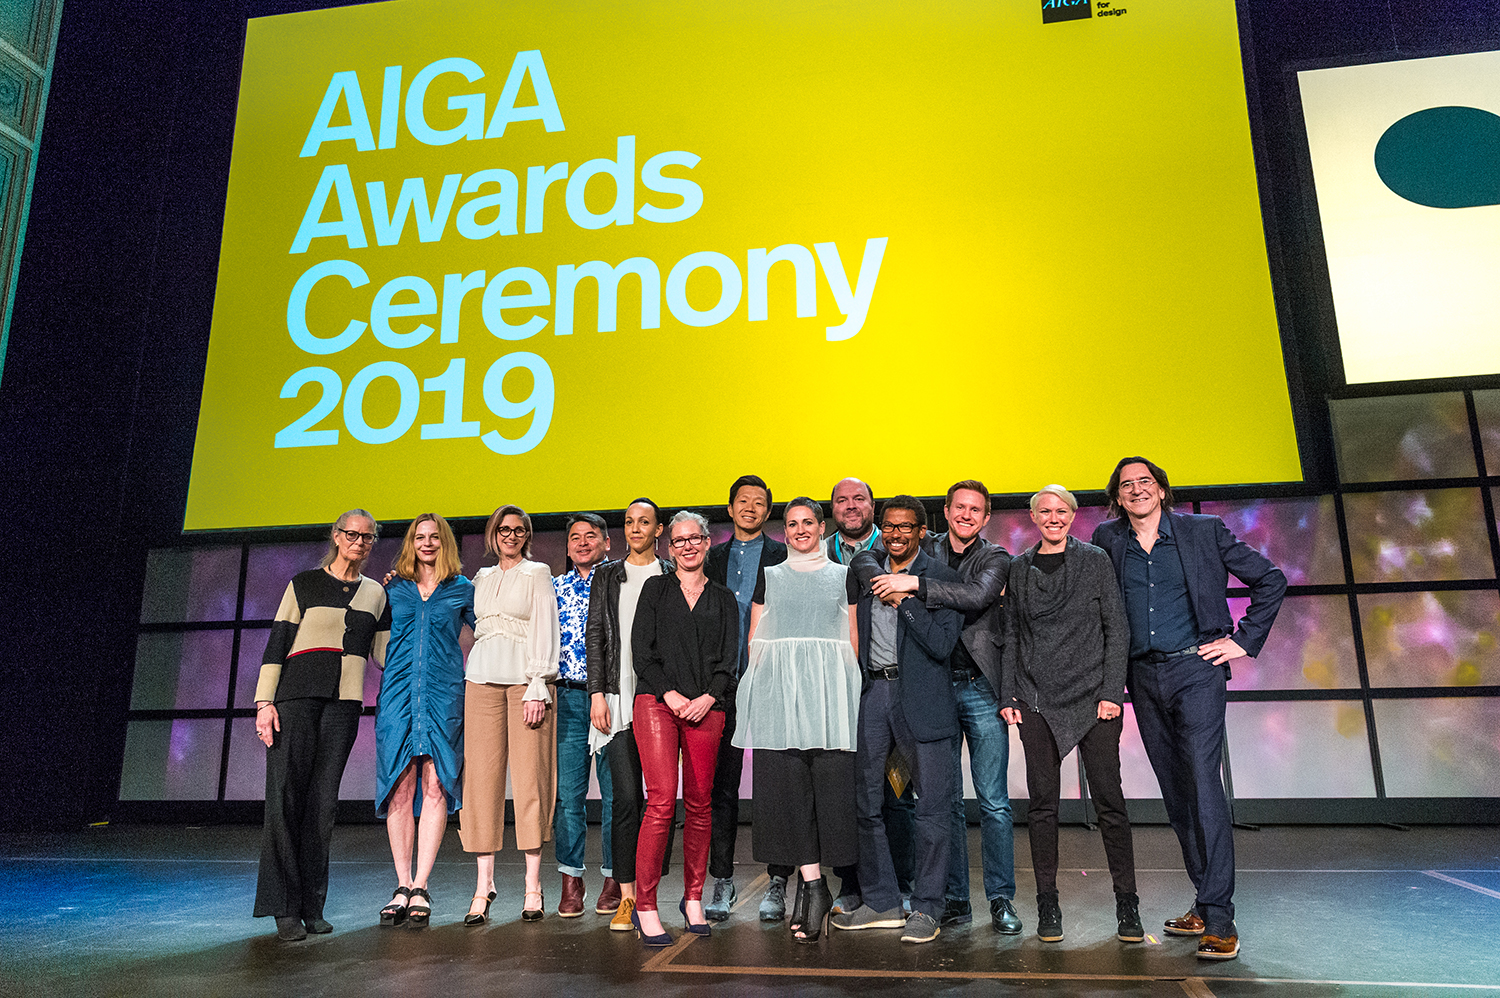 AIGA National Board members at the 2019 AIGA Design Conference and Awards Ceremony chaired by Ashleigh Axios, April 6, 2019. (Photo by  Frank Aymami Photography )